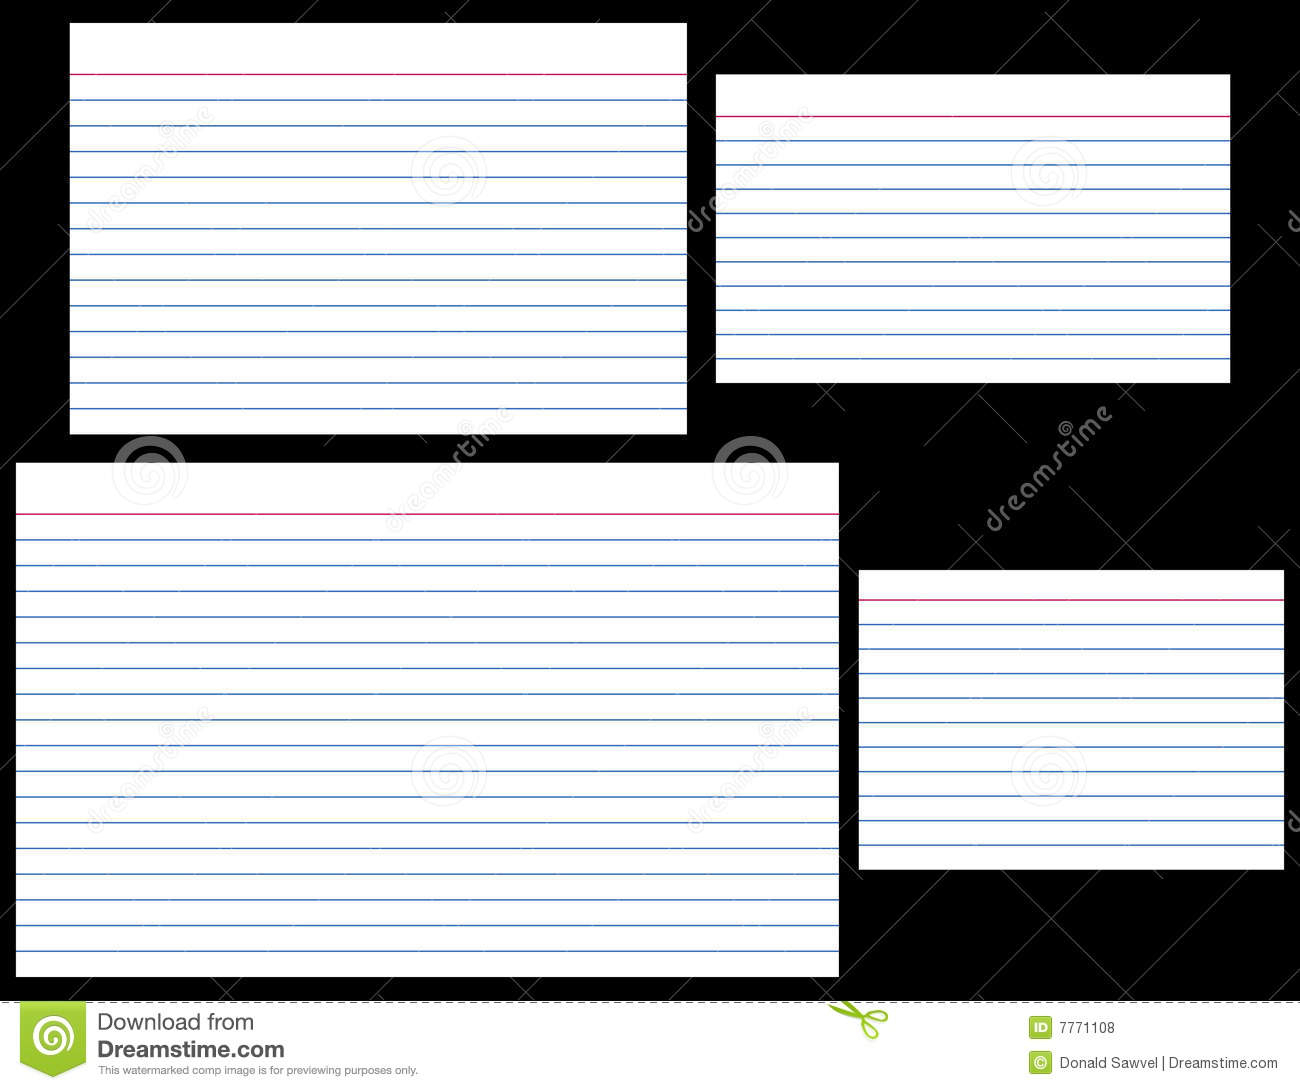 Index Cards Stock Vector. Illustration Of Stationery, Lined Inside 5 By 8 Index Card Template